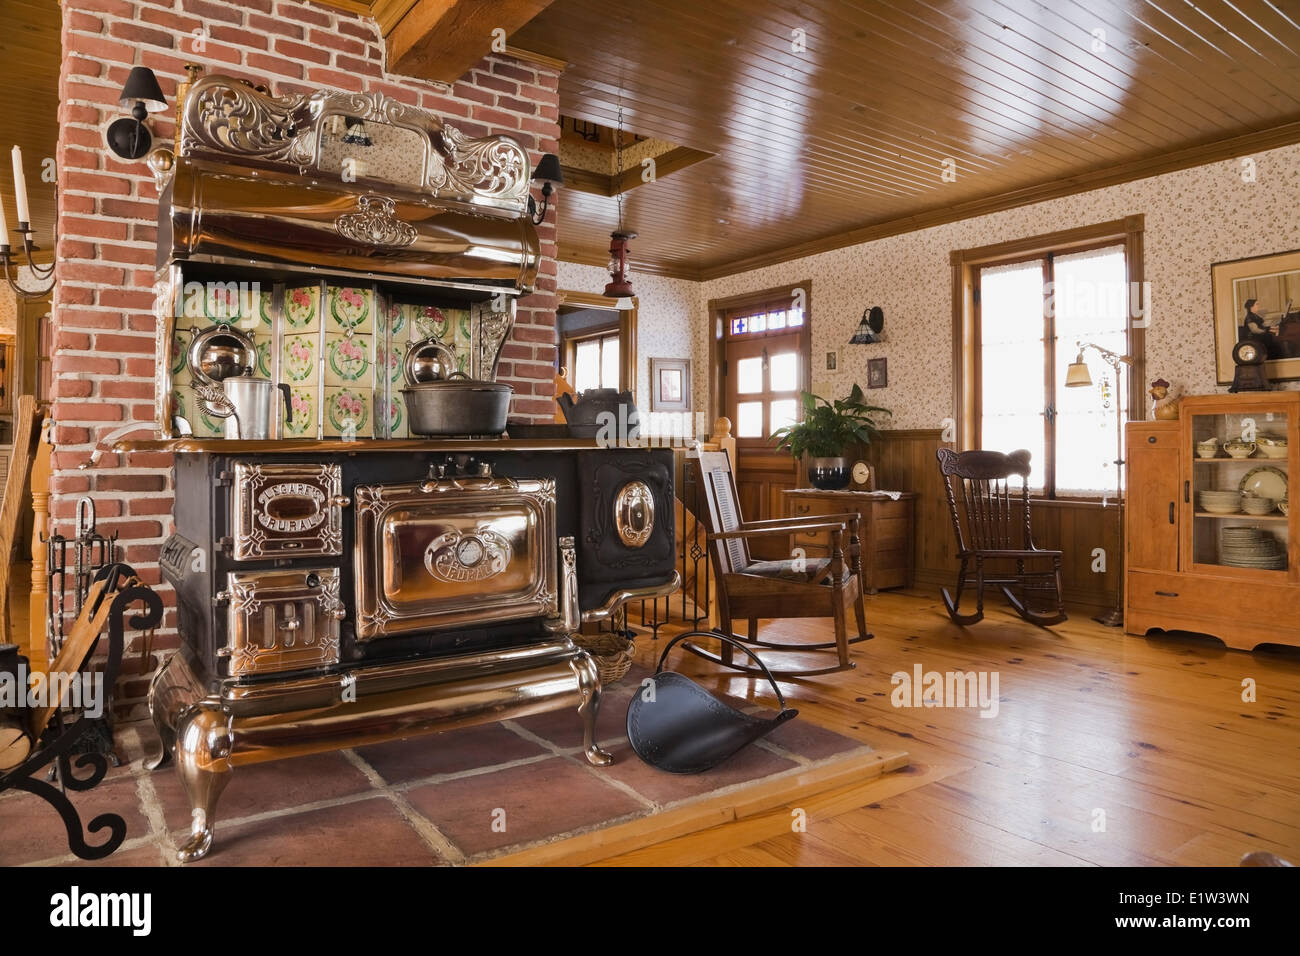 Old Legare's Rural antique wood stove in the living room a Canadiana  cottage style fieldstone residential - Old Legare's Rural Antique Wood Stove In The Living Room A